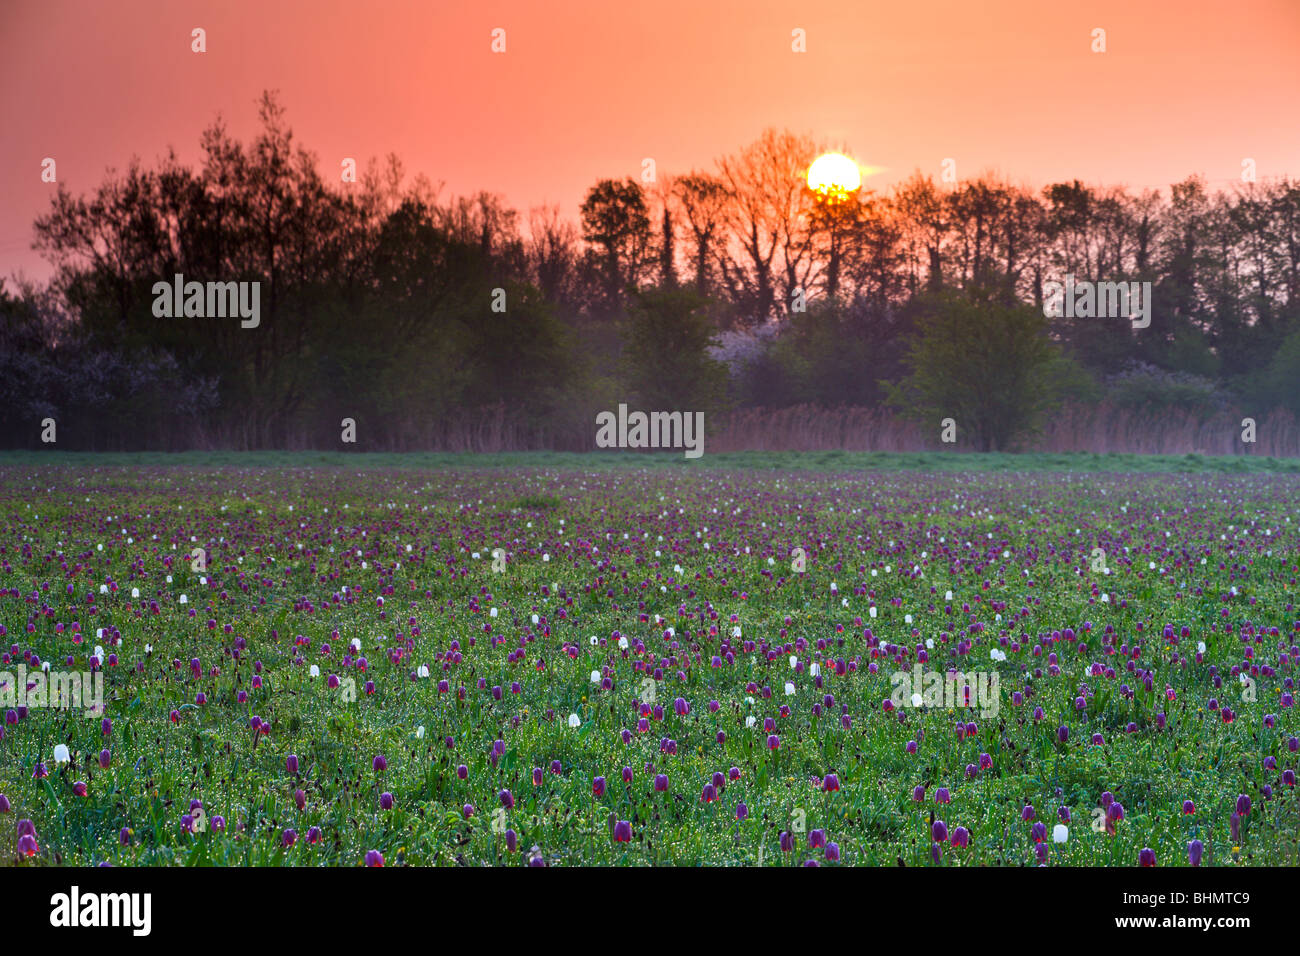 Sunrise over a meadow of Snake's Head fritillary (Fritillaria meleagris) wildflowers, North Meadow, Cricklade, - Stock Image